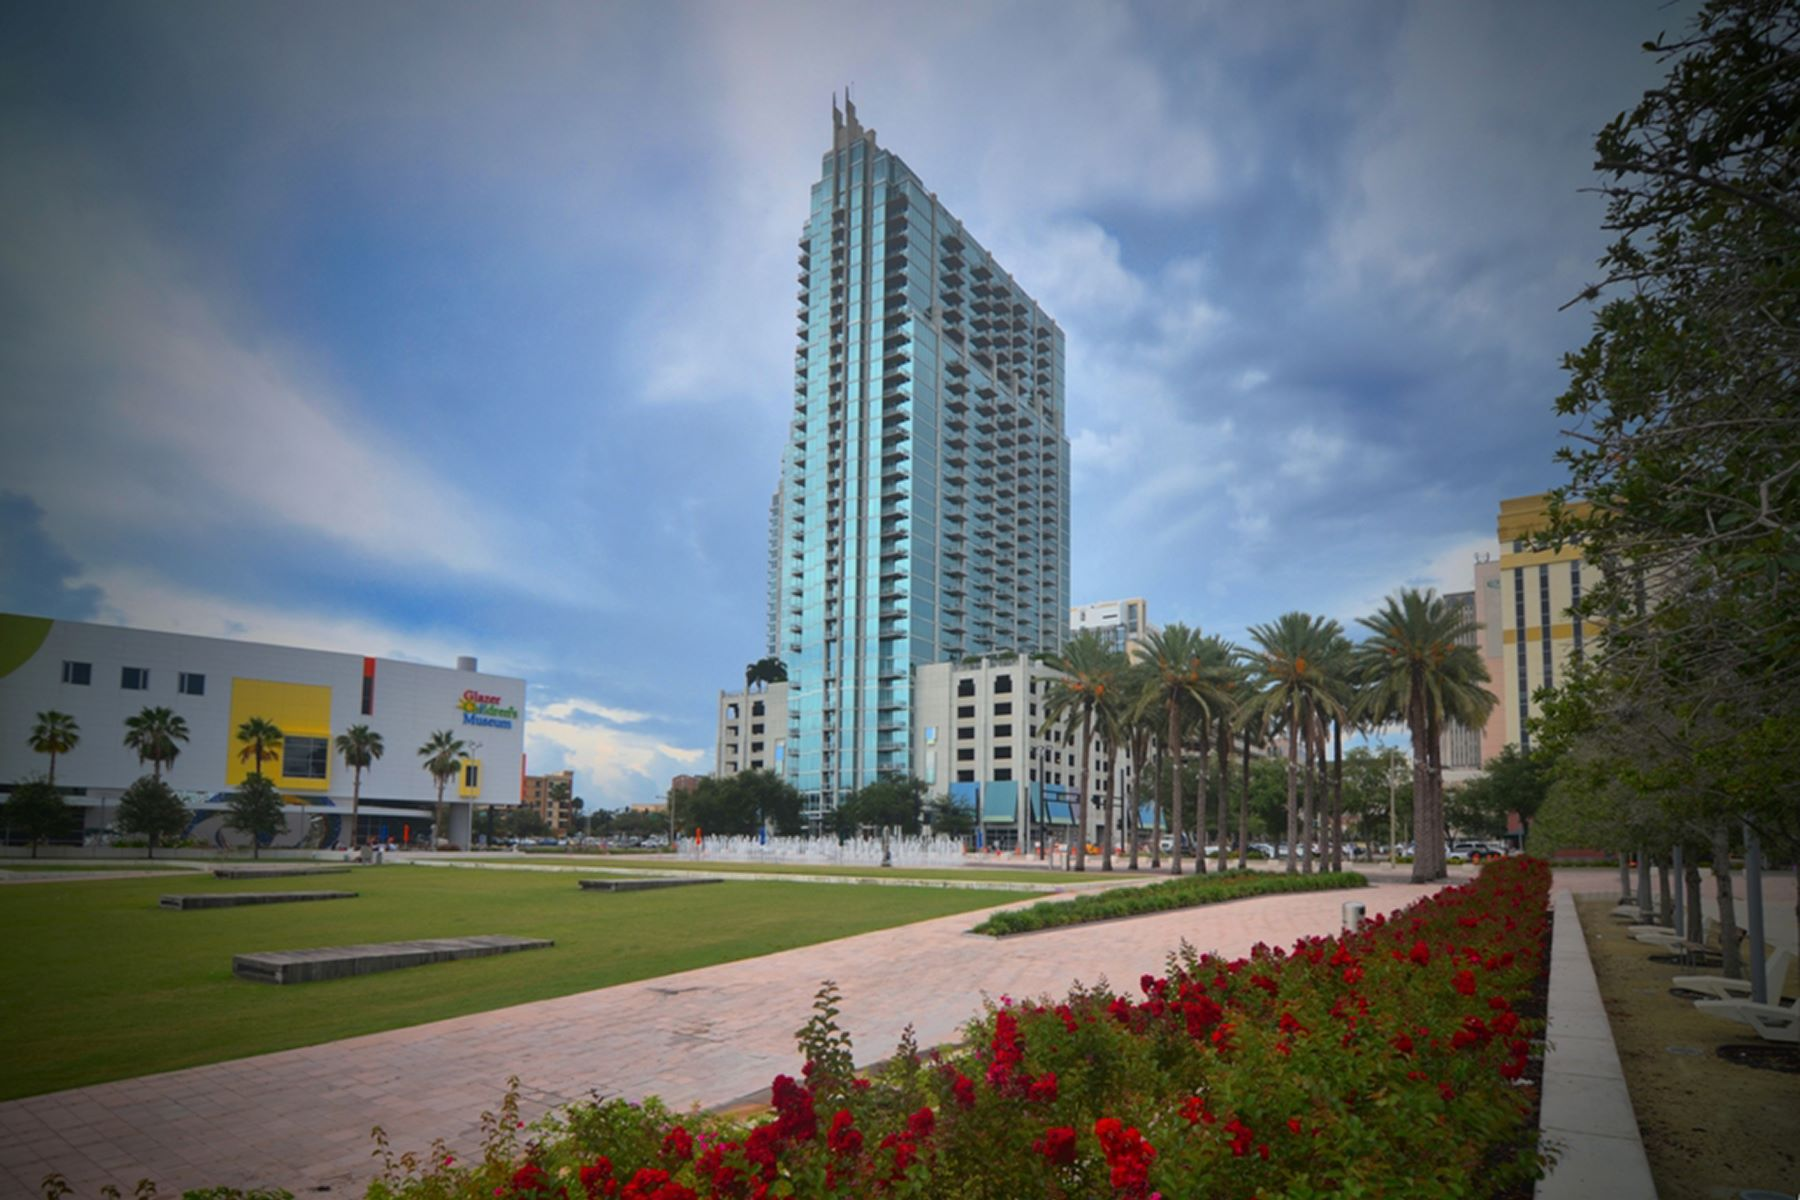 Condominium for Sale at DOWNTOWN 777 N Ashley Dr 1015 Downtown, Tampa, Florida, 33602 United States